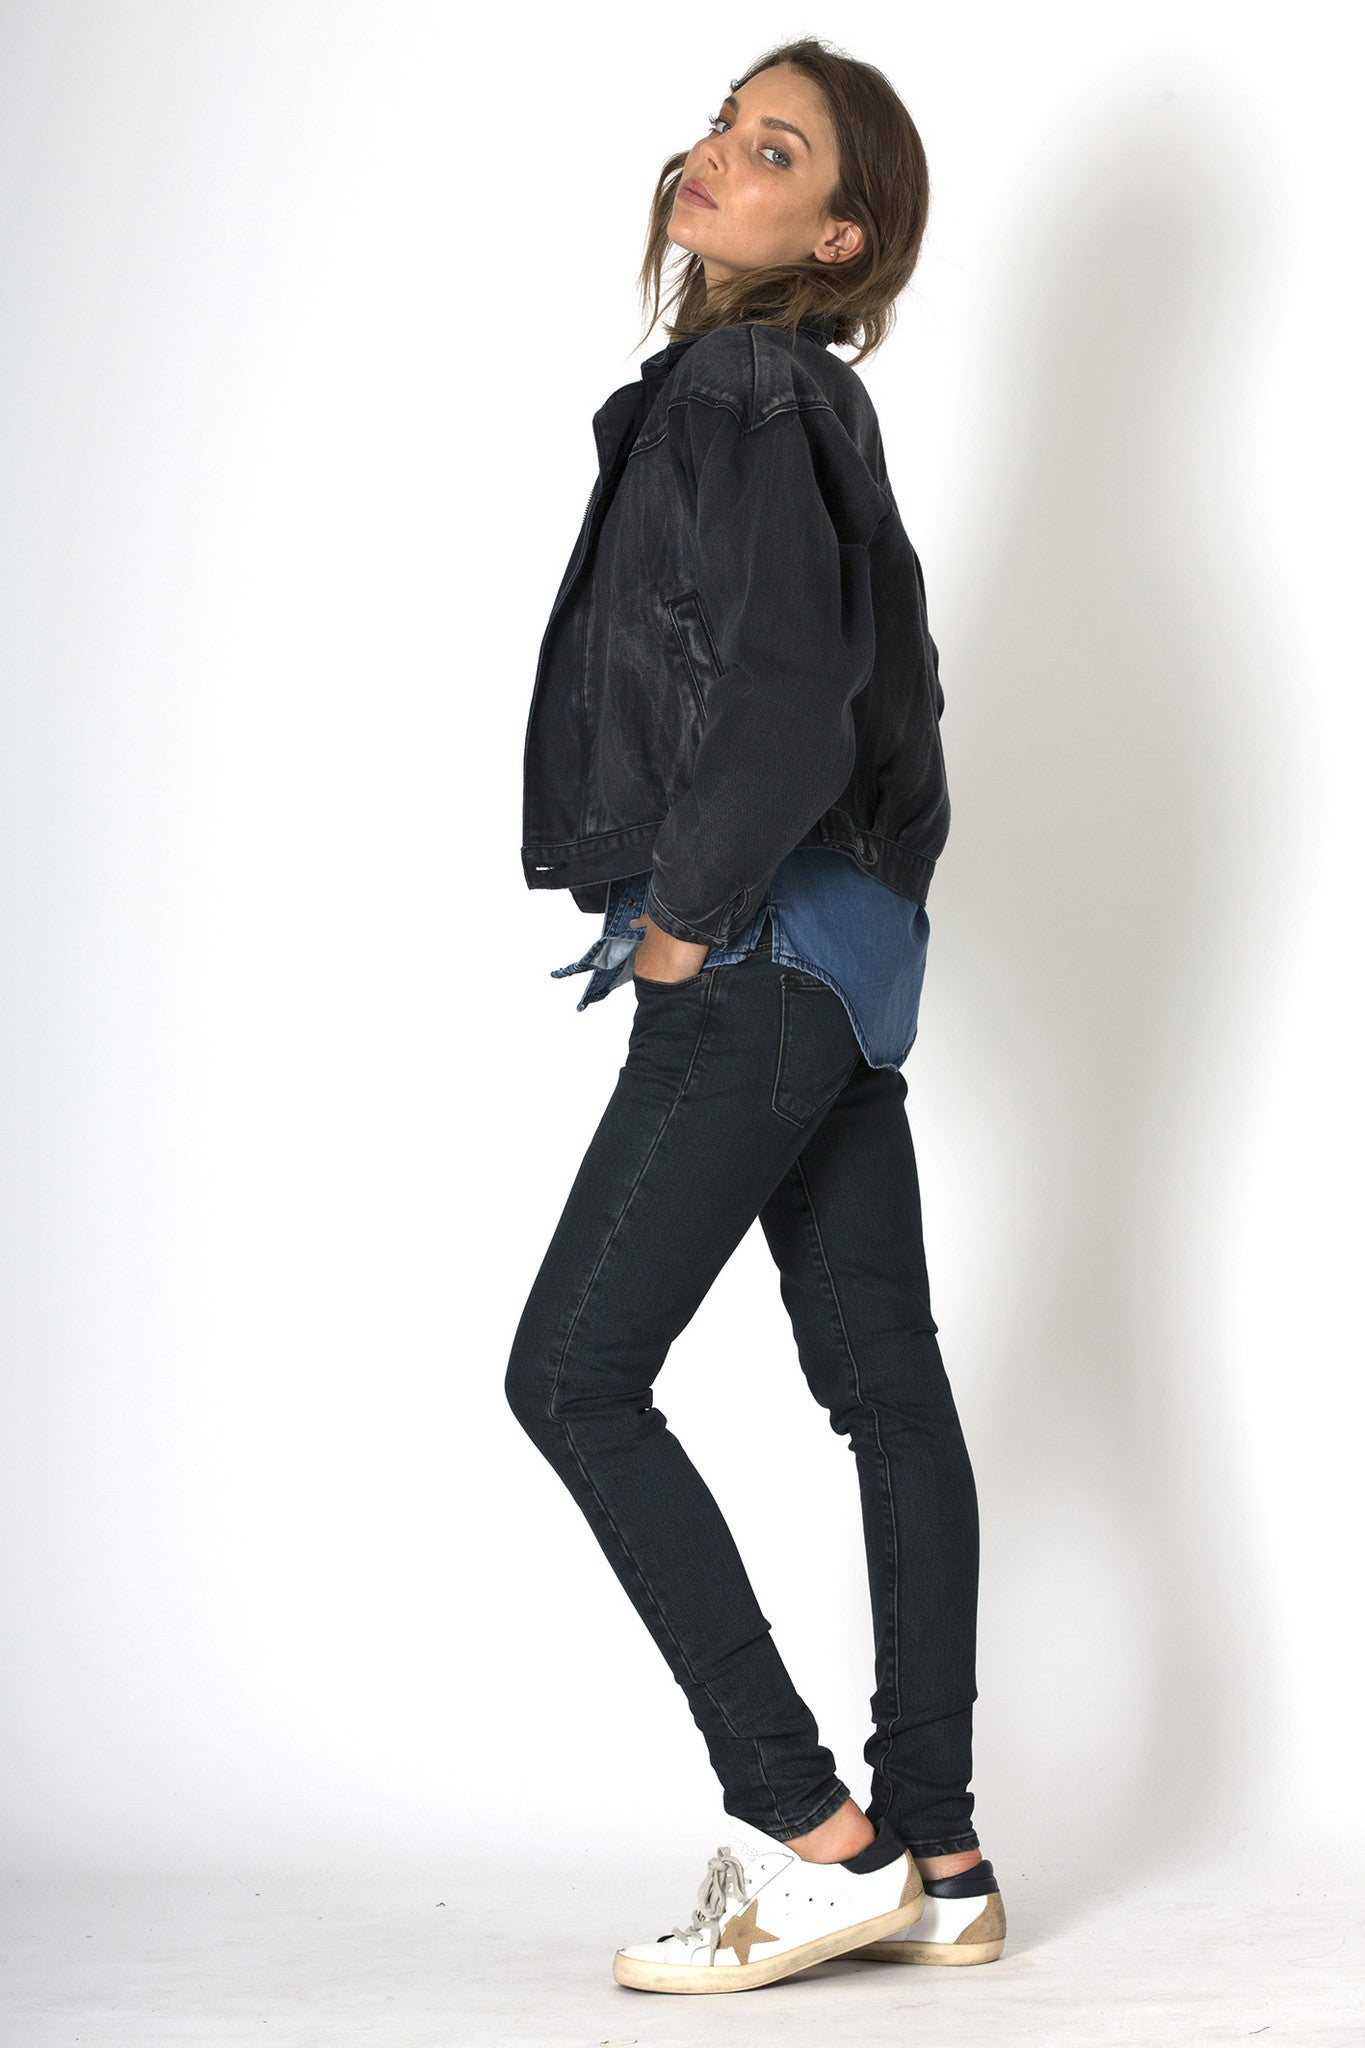 #3G14 Bomber Jacket Raven Black - denimcolab